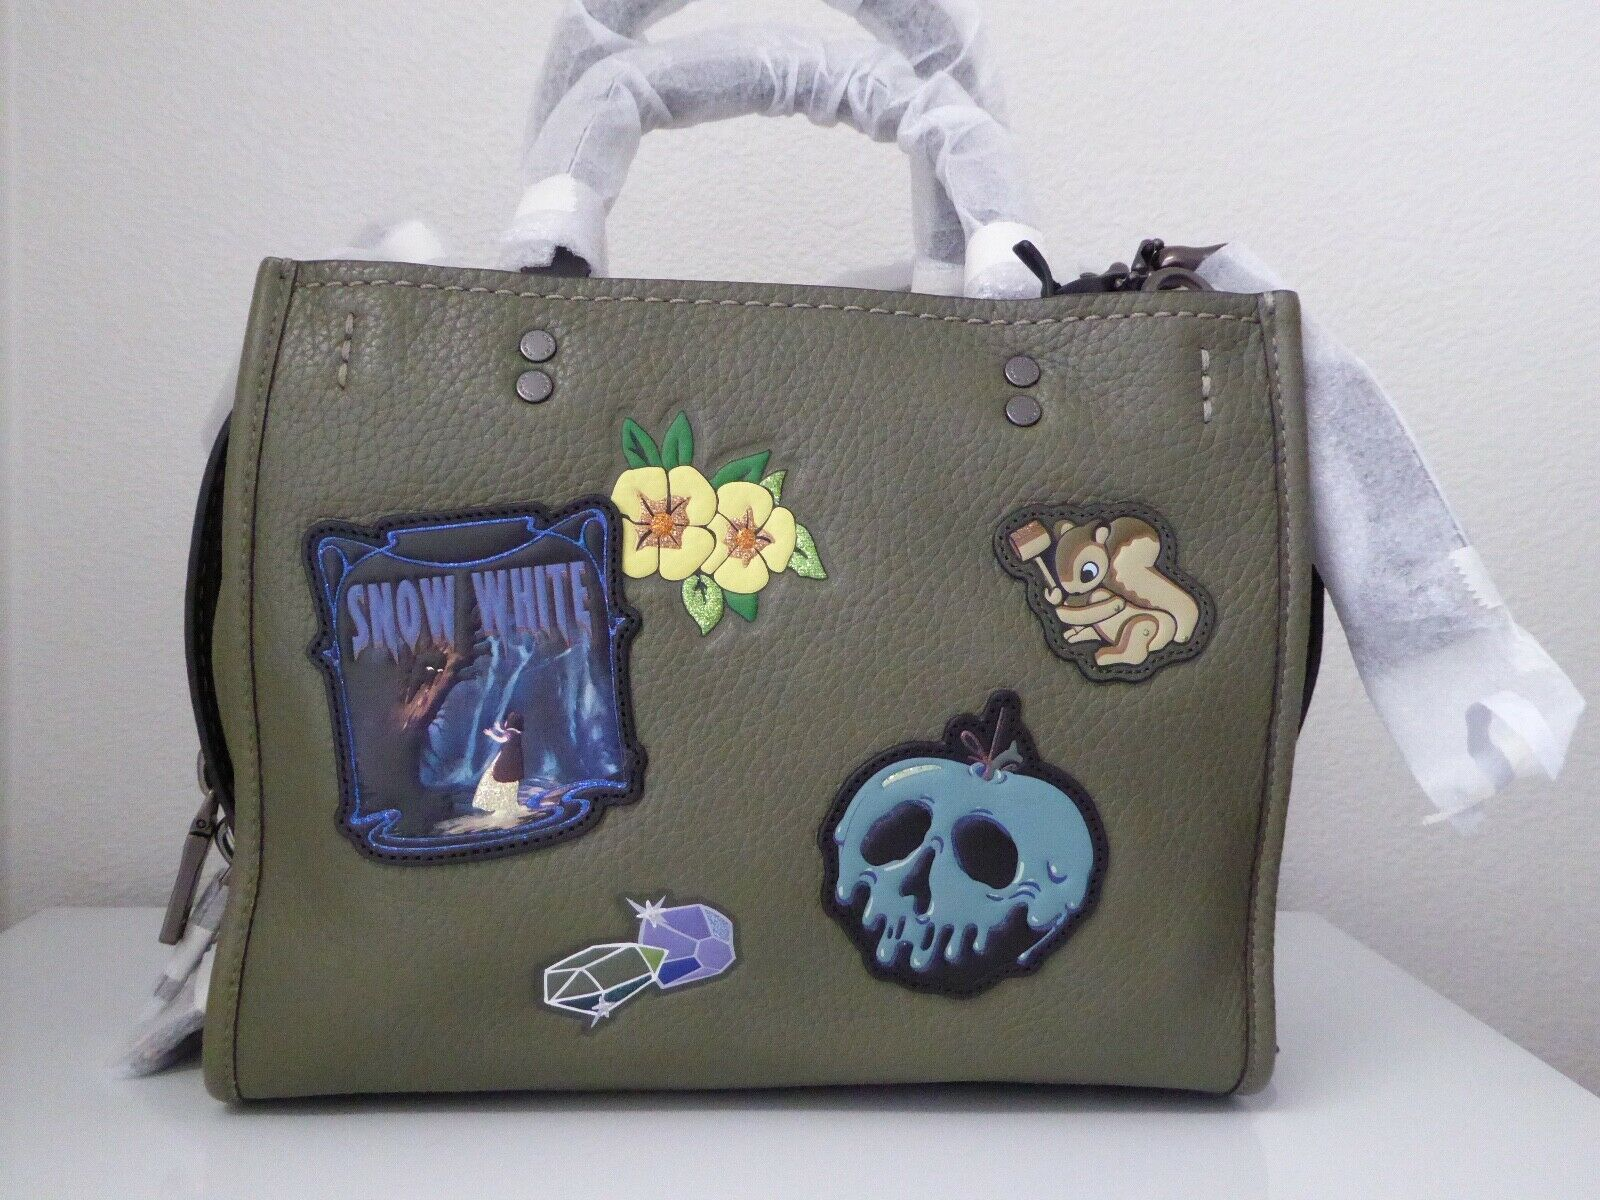 Primary image for New Coach X-Disneys Dark Fairy Tales Snow White Rogue 25 Army Green Handbag